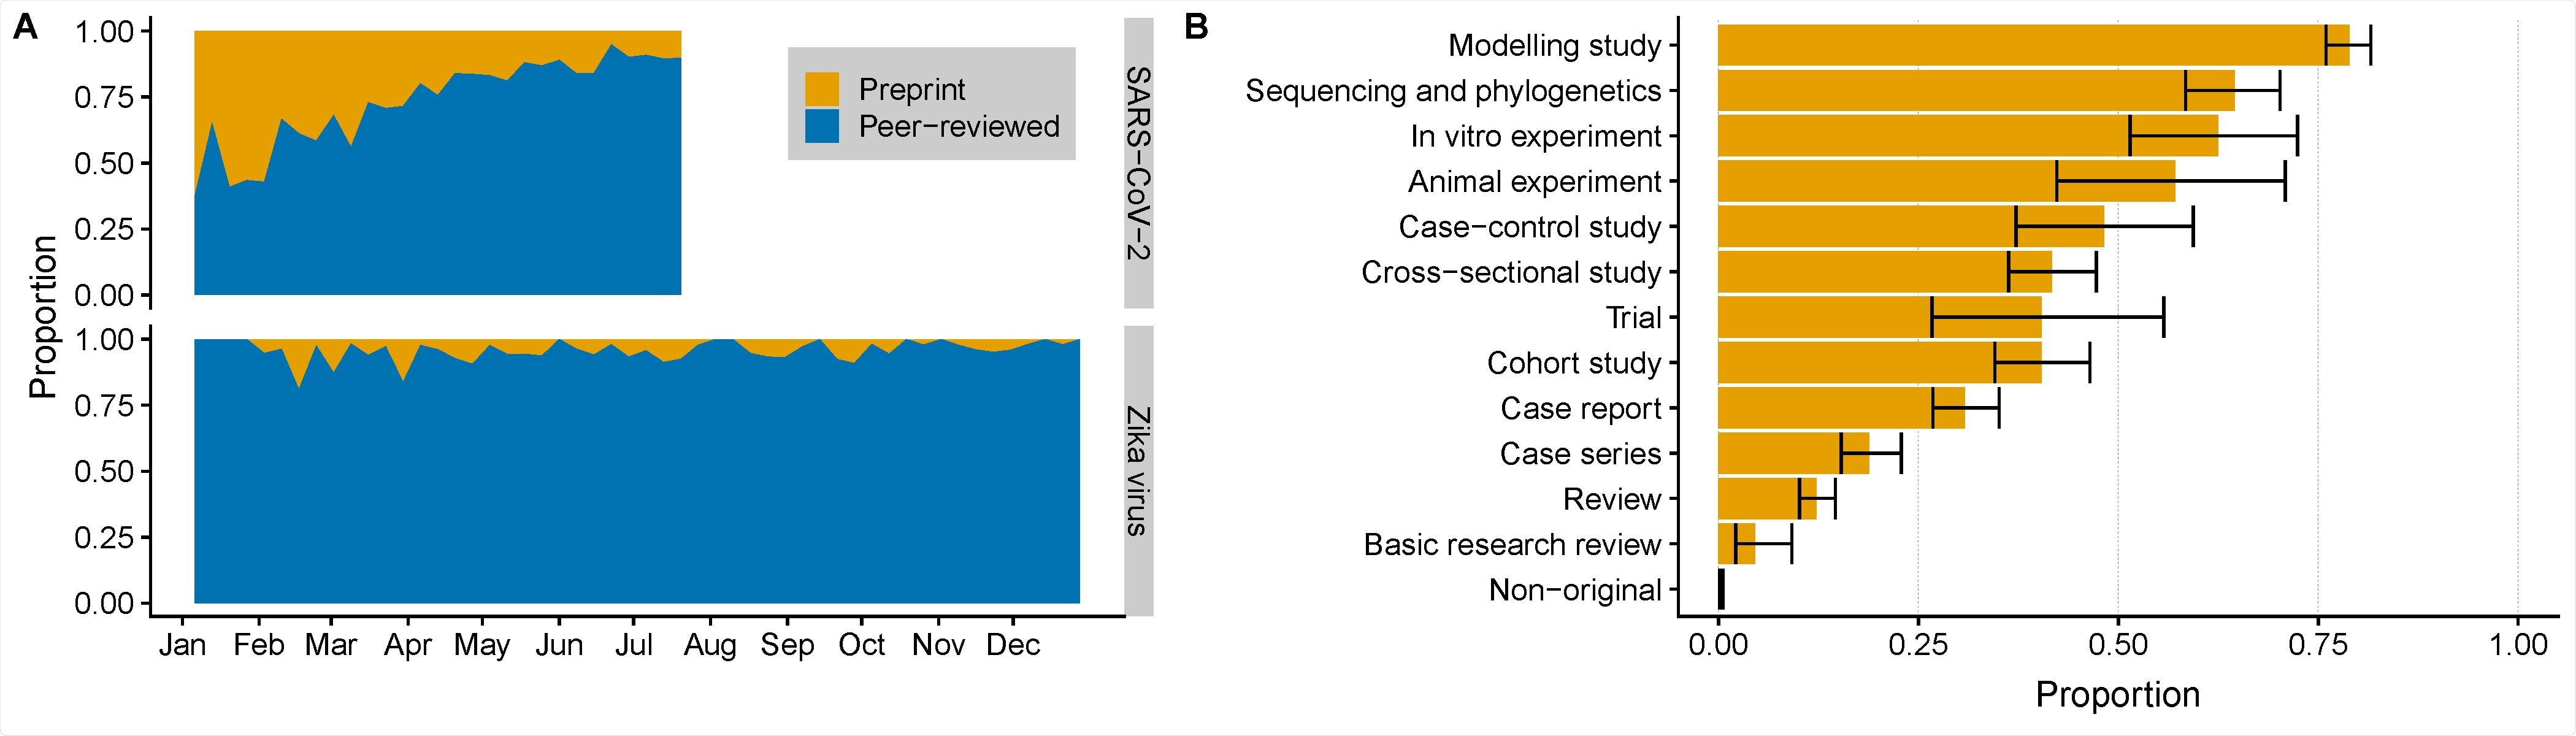 The proportion of preprint publications and peer-reviewed publications for SARS-CoV-2 (SARS-CoV-2) and Zika virus (Zika virus) research over time (A) and by study design for SARS-CoV-2 (B). SARS-CoV-2: Severe acute respiratory syndrome coronavirus 2